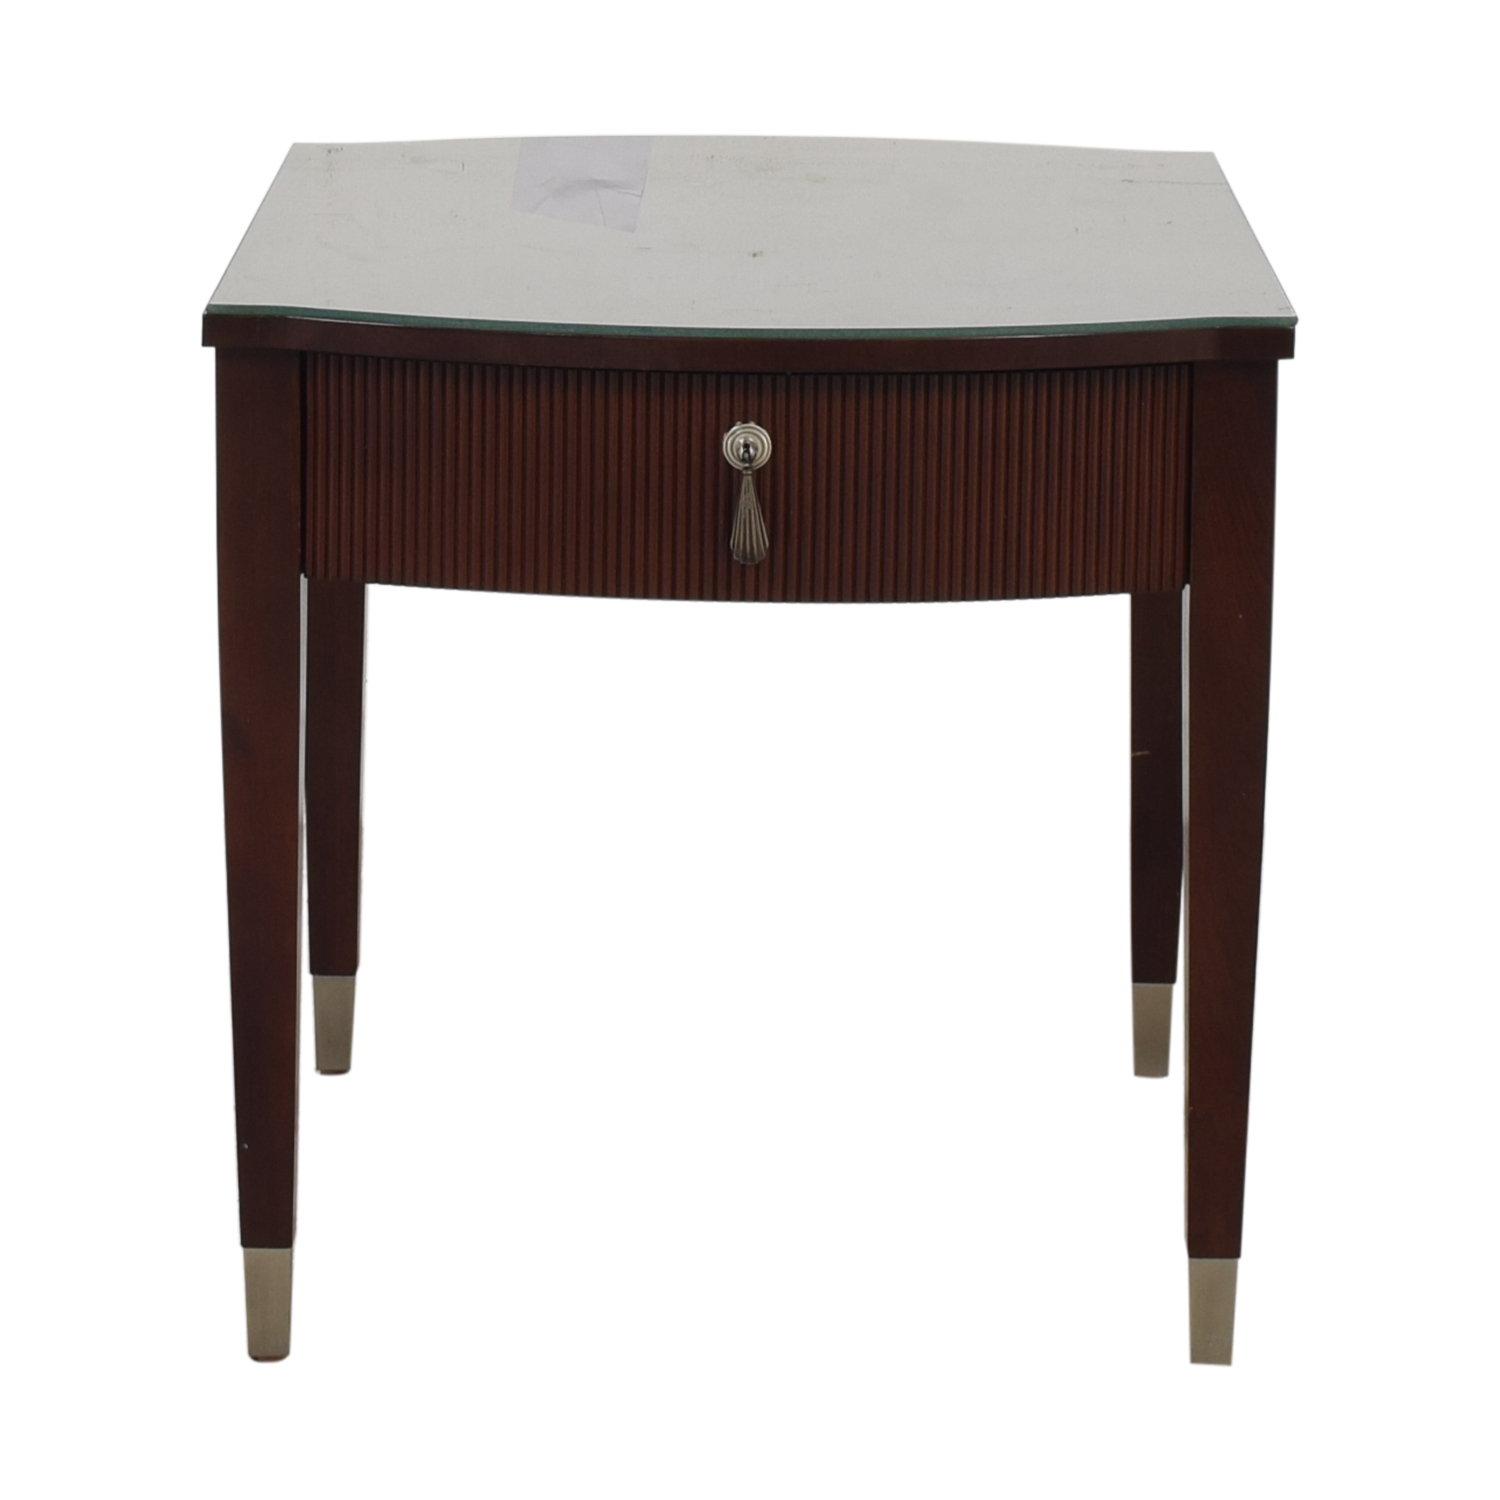 Ethan Allen Ethan Allen Avenue Side Table with Drawer discount